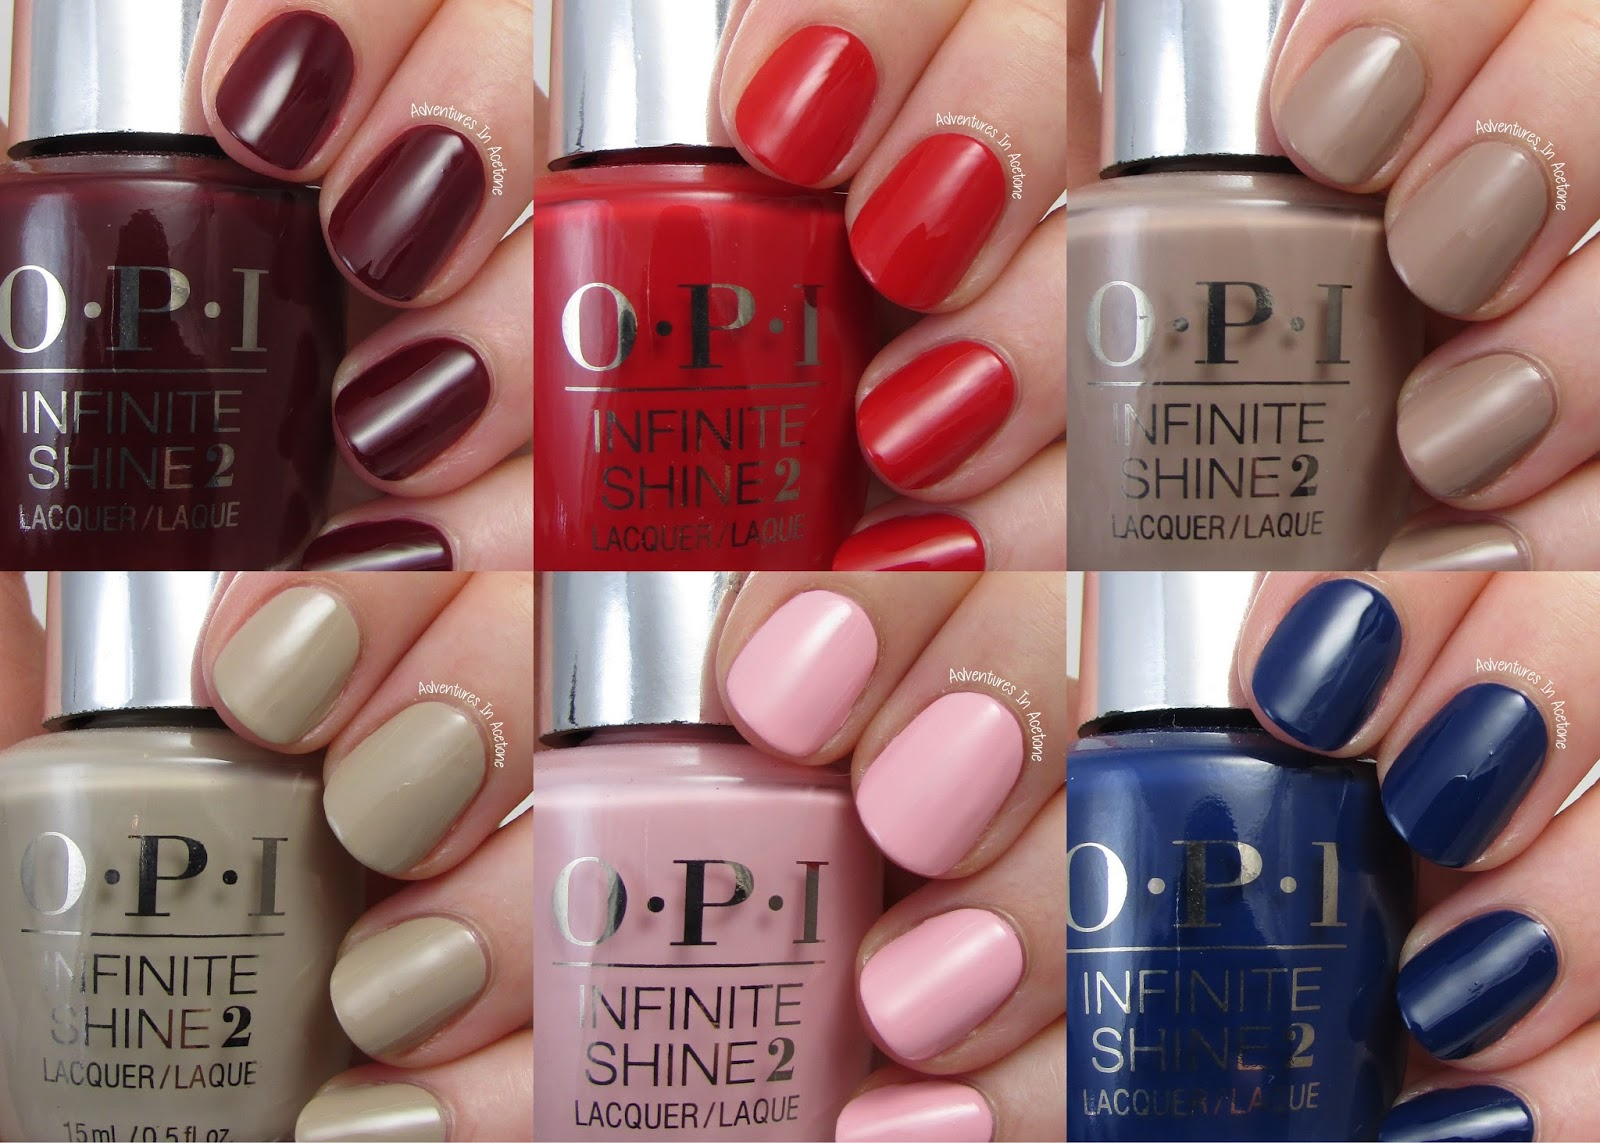 Gel Polish And Up To 10 Days Of Wear Without The Need Cure With A Light Or Soak Off For Removal Let S Take Look At 6 Colors I Received